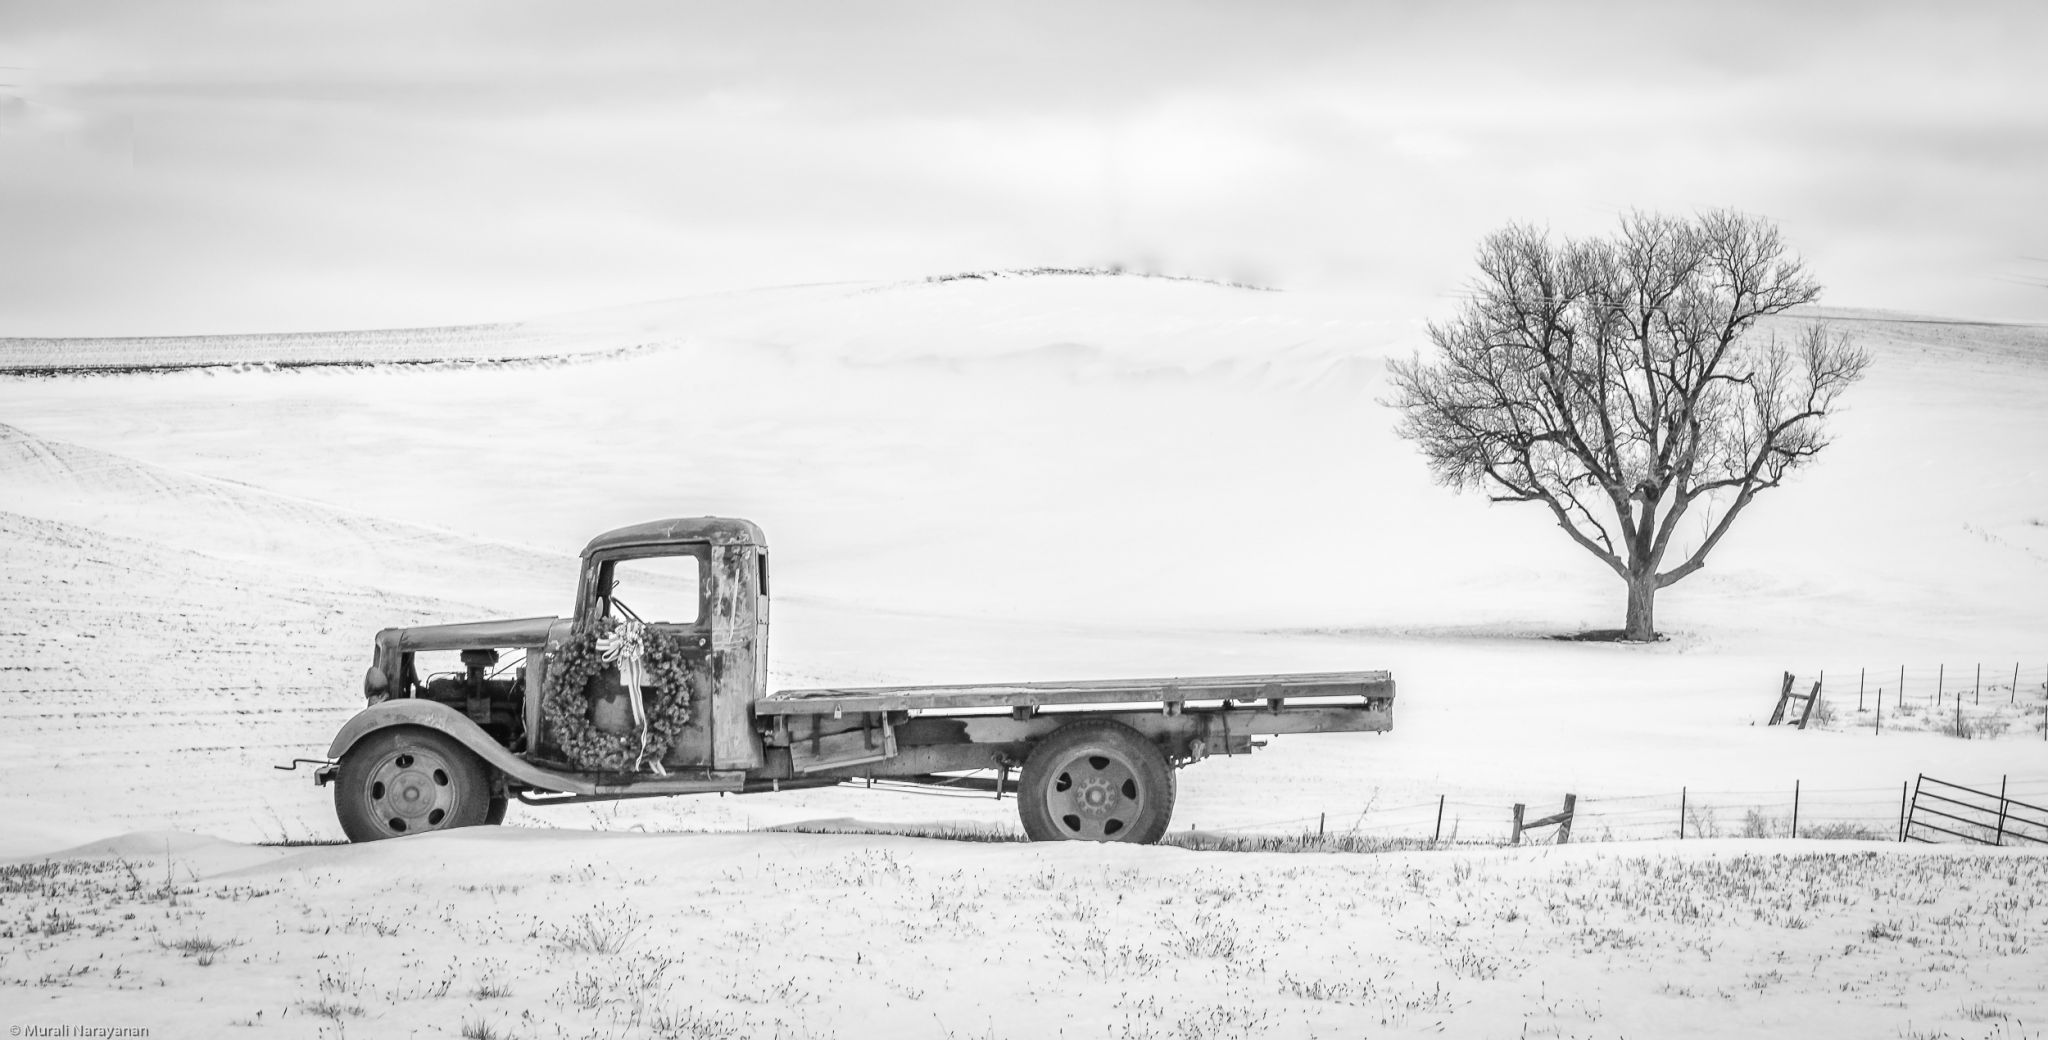 Palouse Truck in Winter, USA